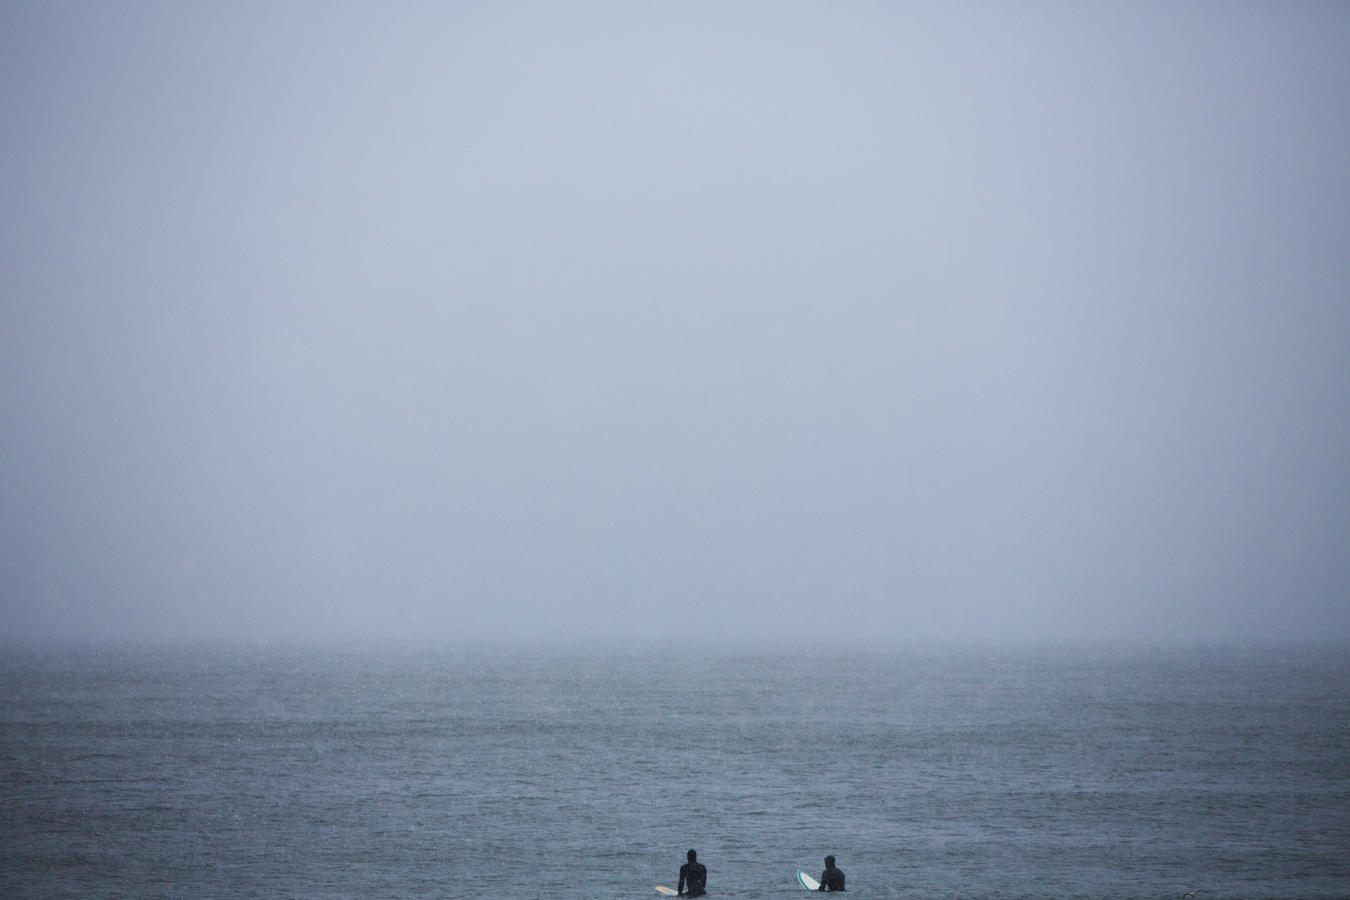 Fishermans_1.3.14 (110 of 18).jpg